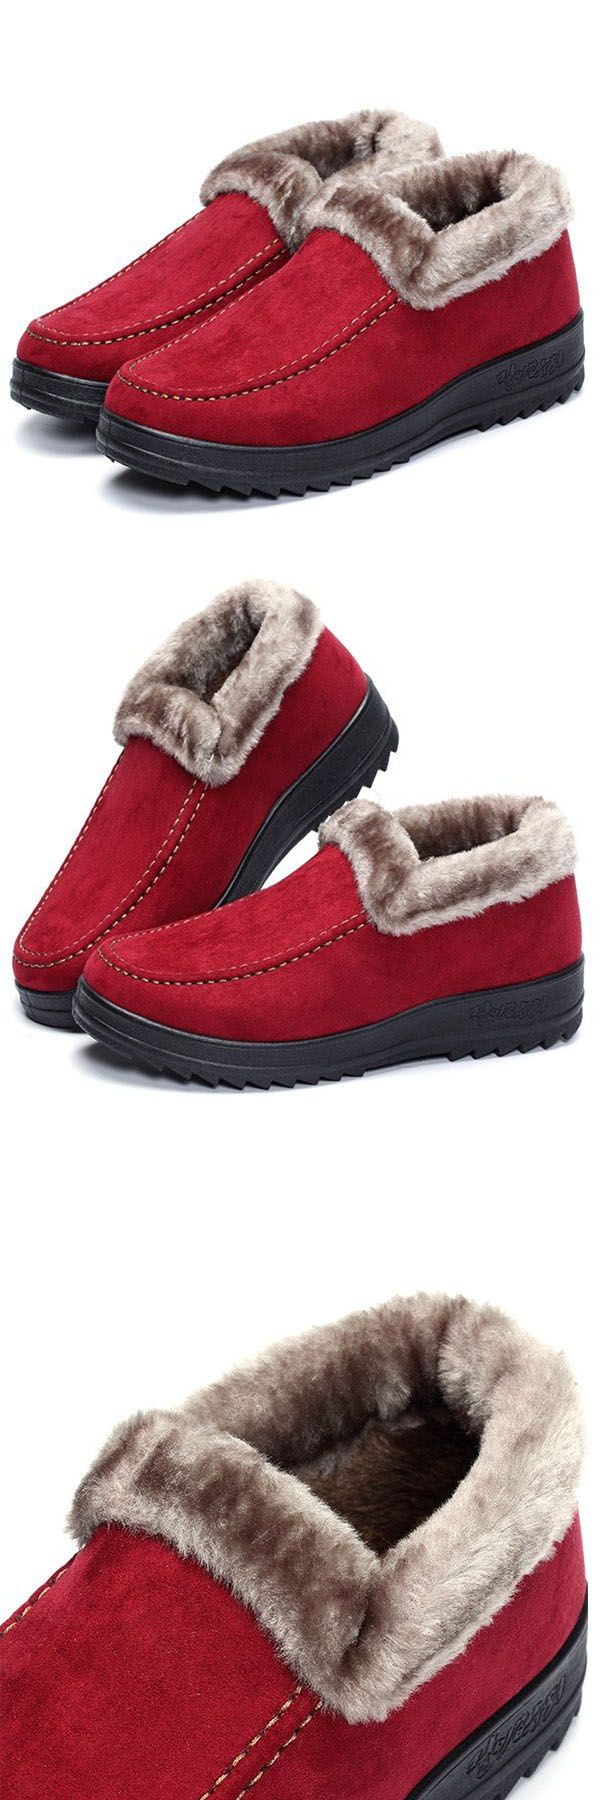 How to keep warm in cheap and good quality style shoes?#fashion #fashionblogger #fashionista #fashionblog #fashionstyle #christmas #gift